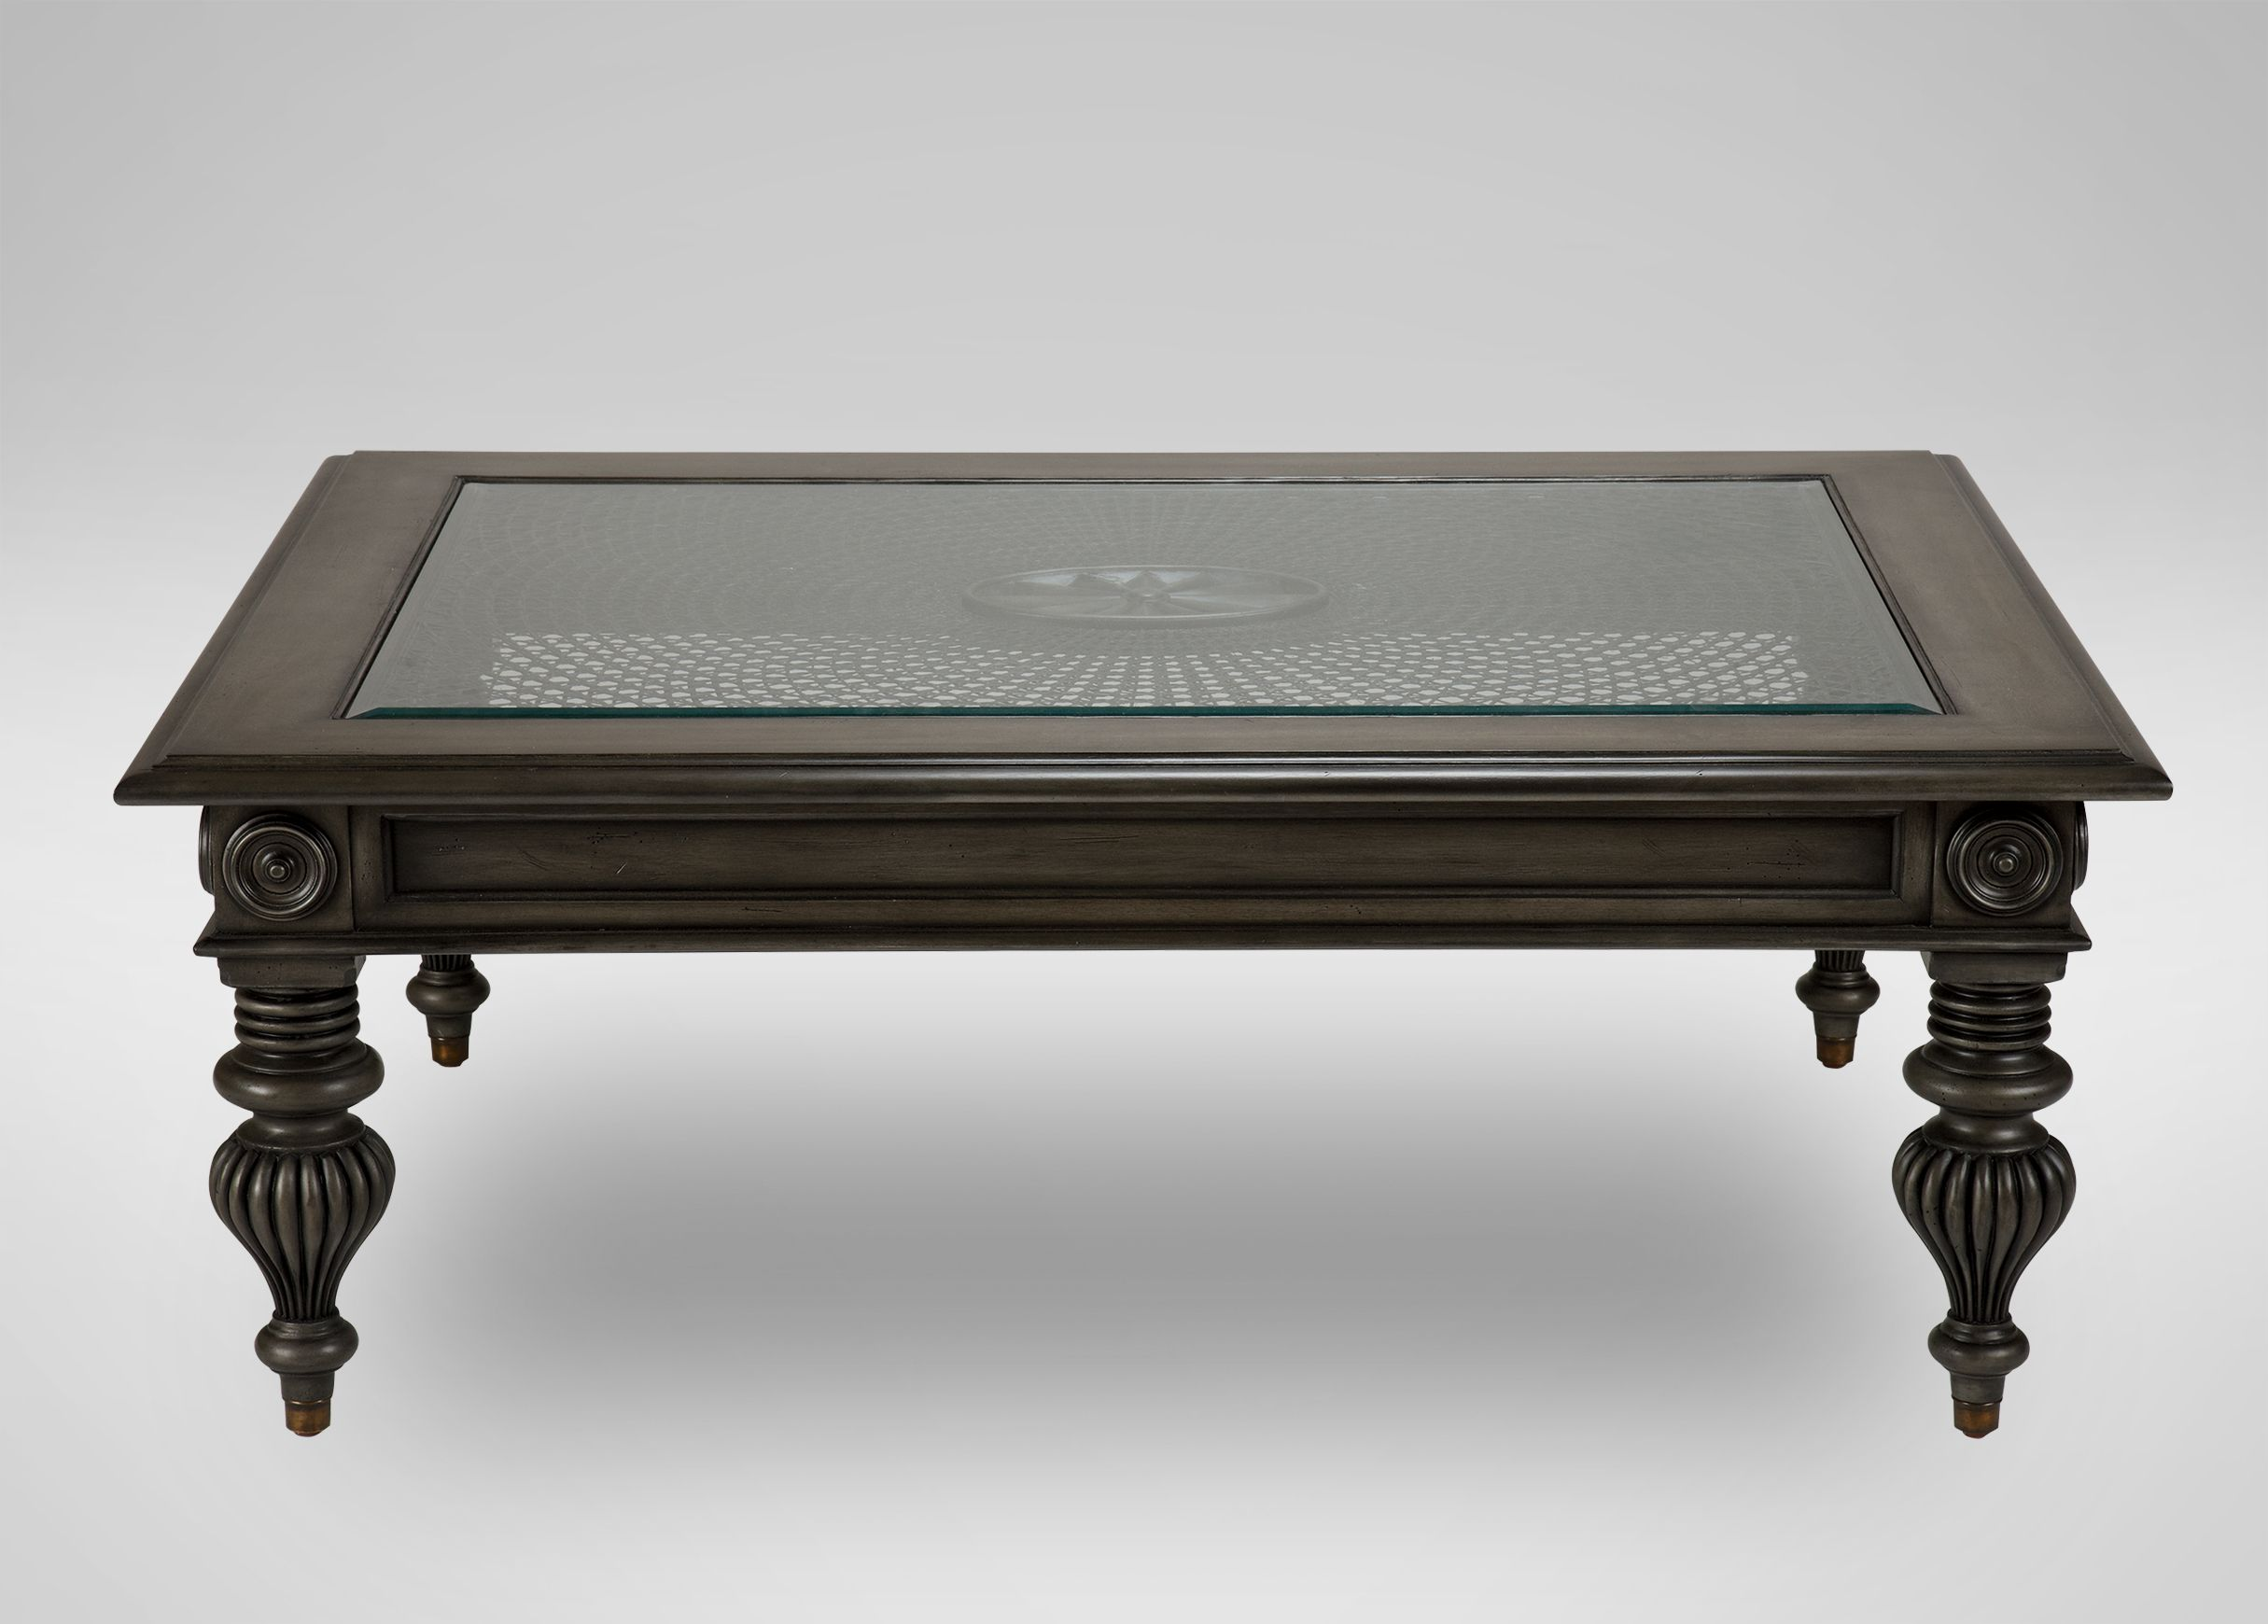 Windward Coffee Table Wooden Coffee Table Designs Center Table Living Room Coffee Table [ 1740 x 2430 Pixel ]